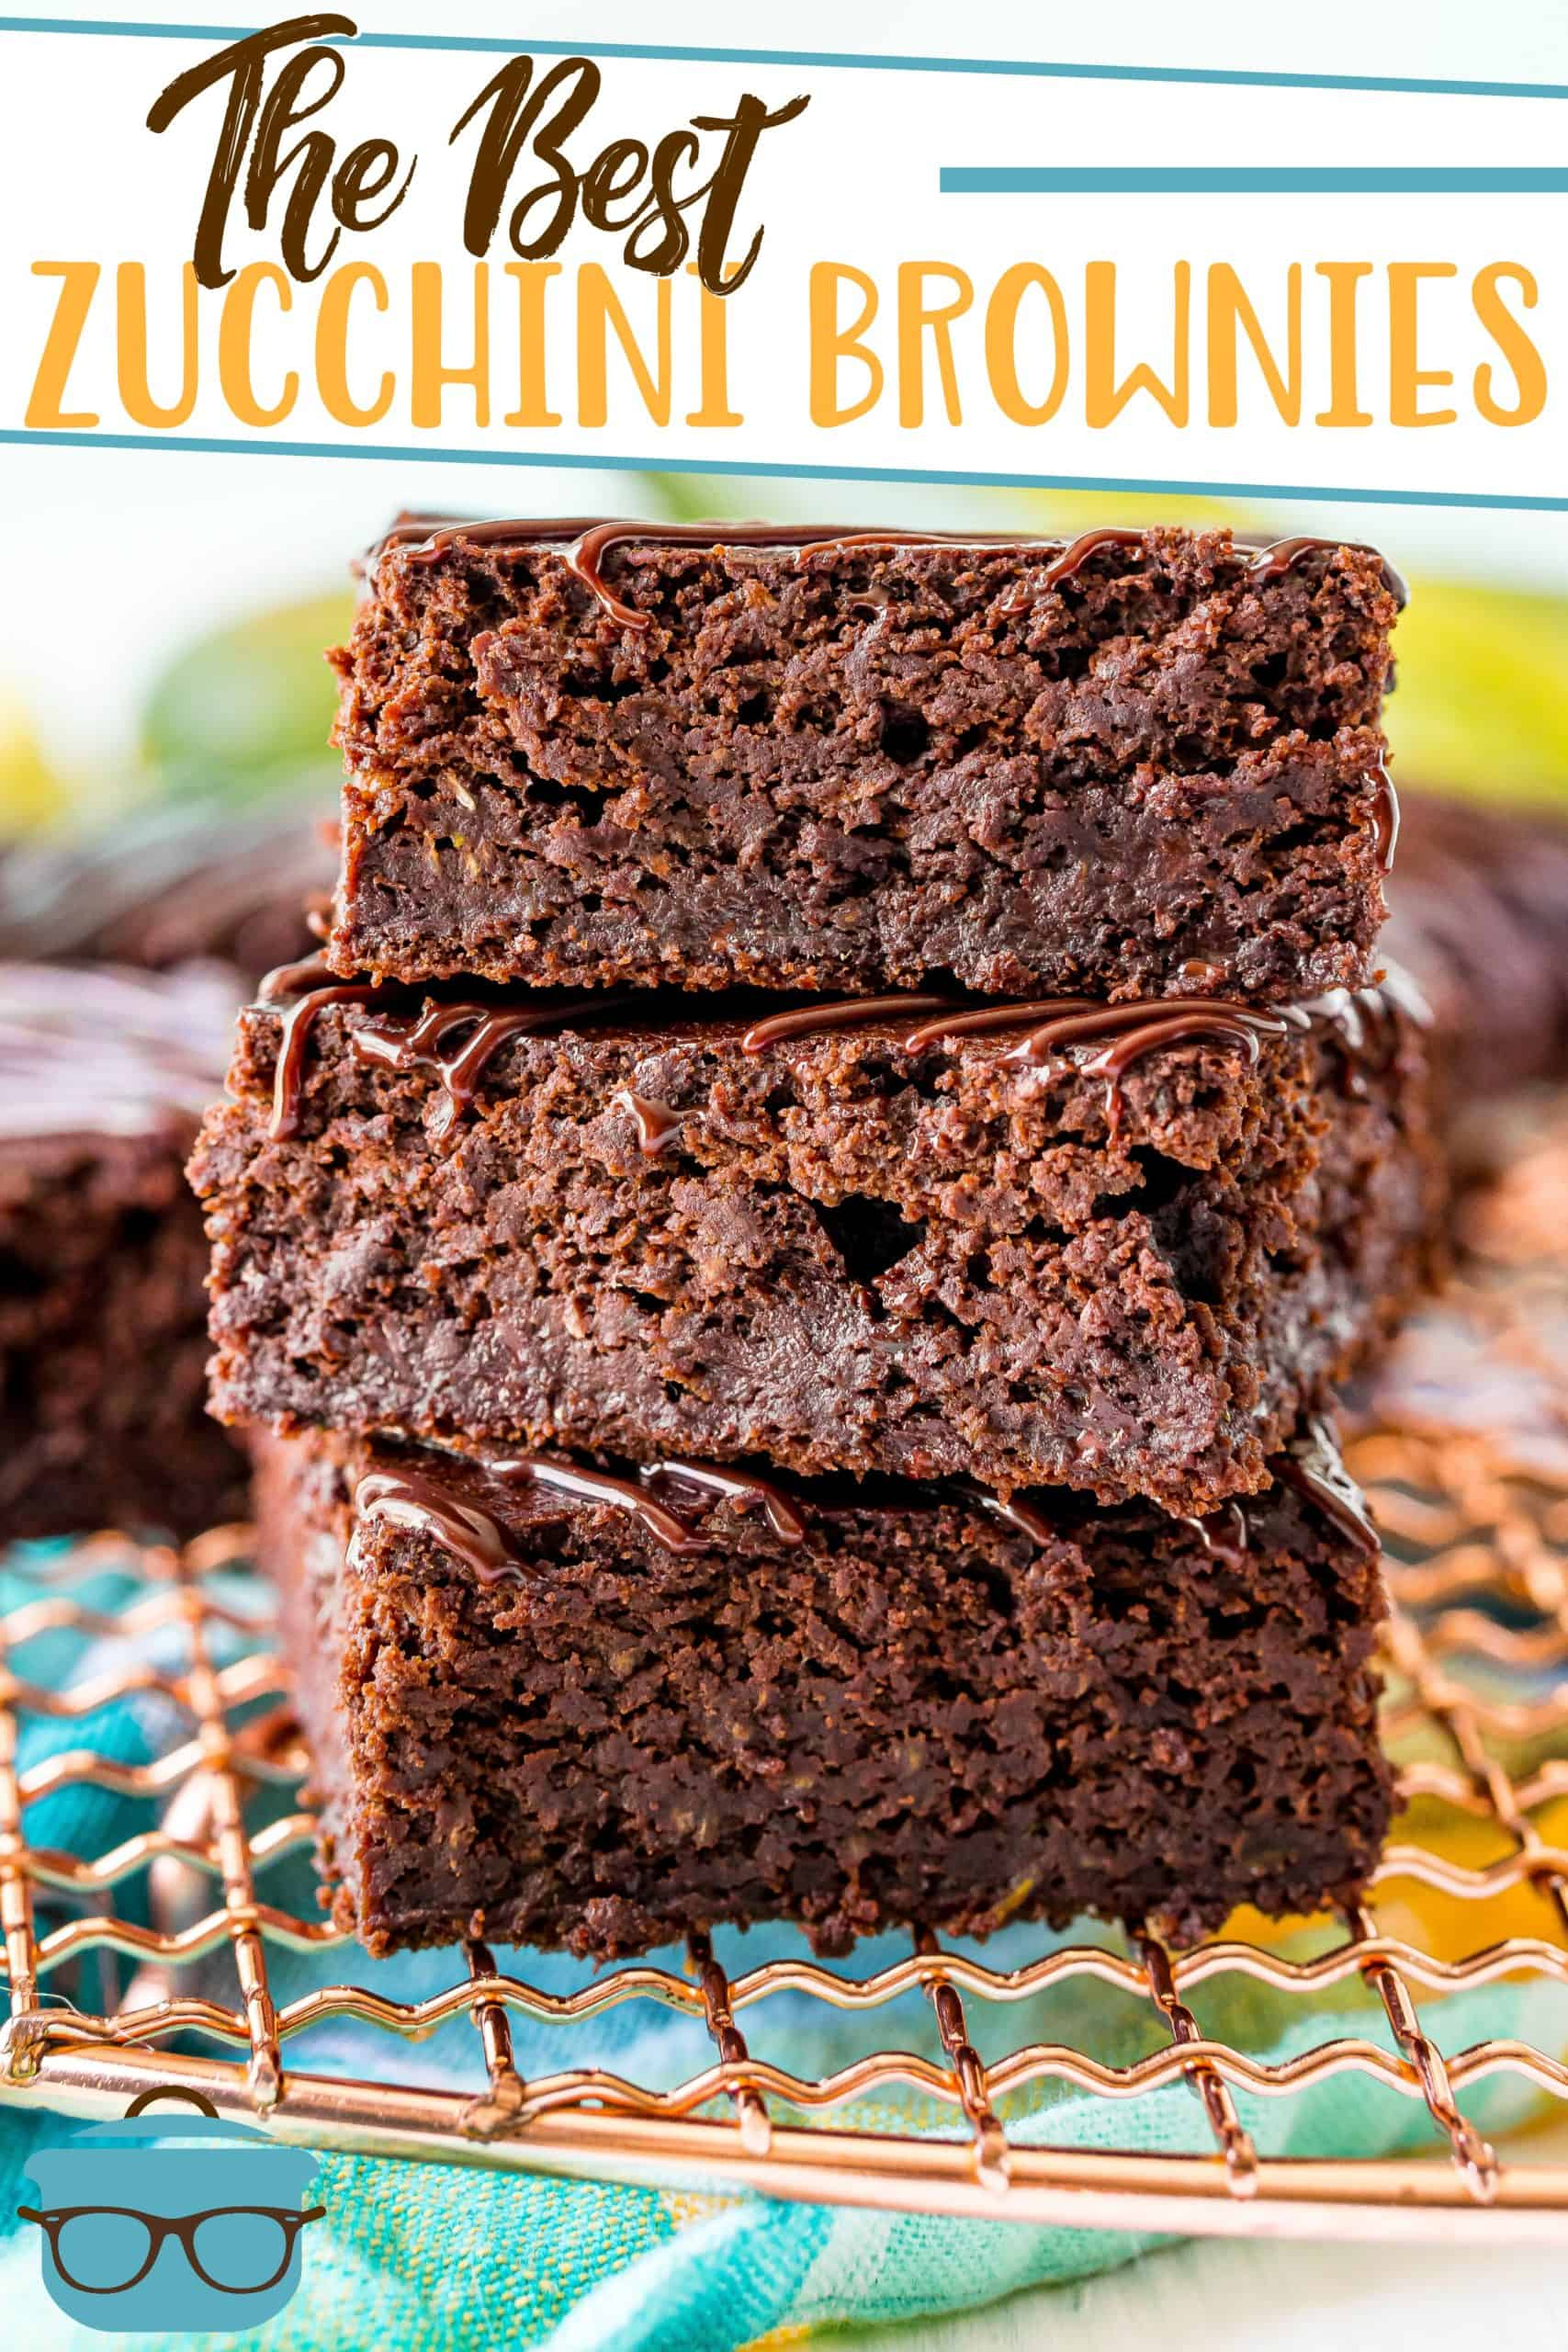 This delicious chocolate fudge zucchini brownie recipe is not only simple to make but it is dairy-free and can easily be made gluten-free!